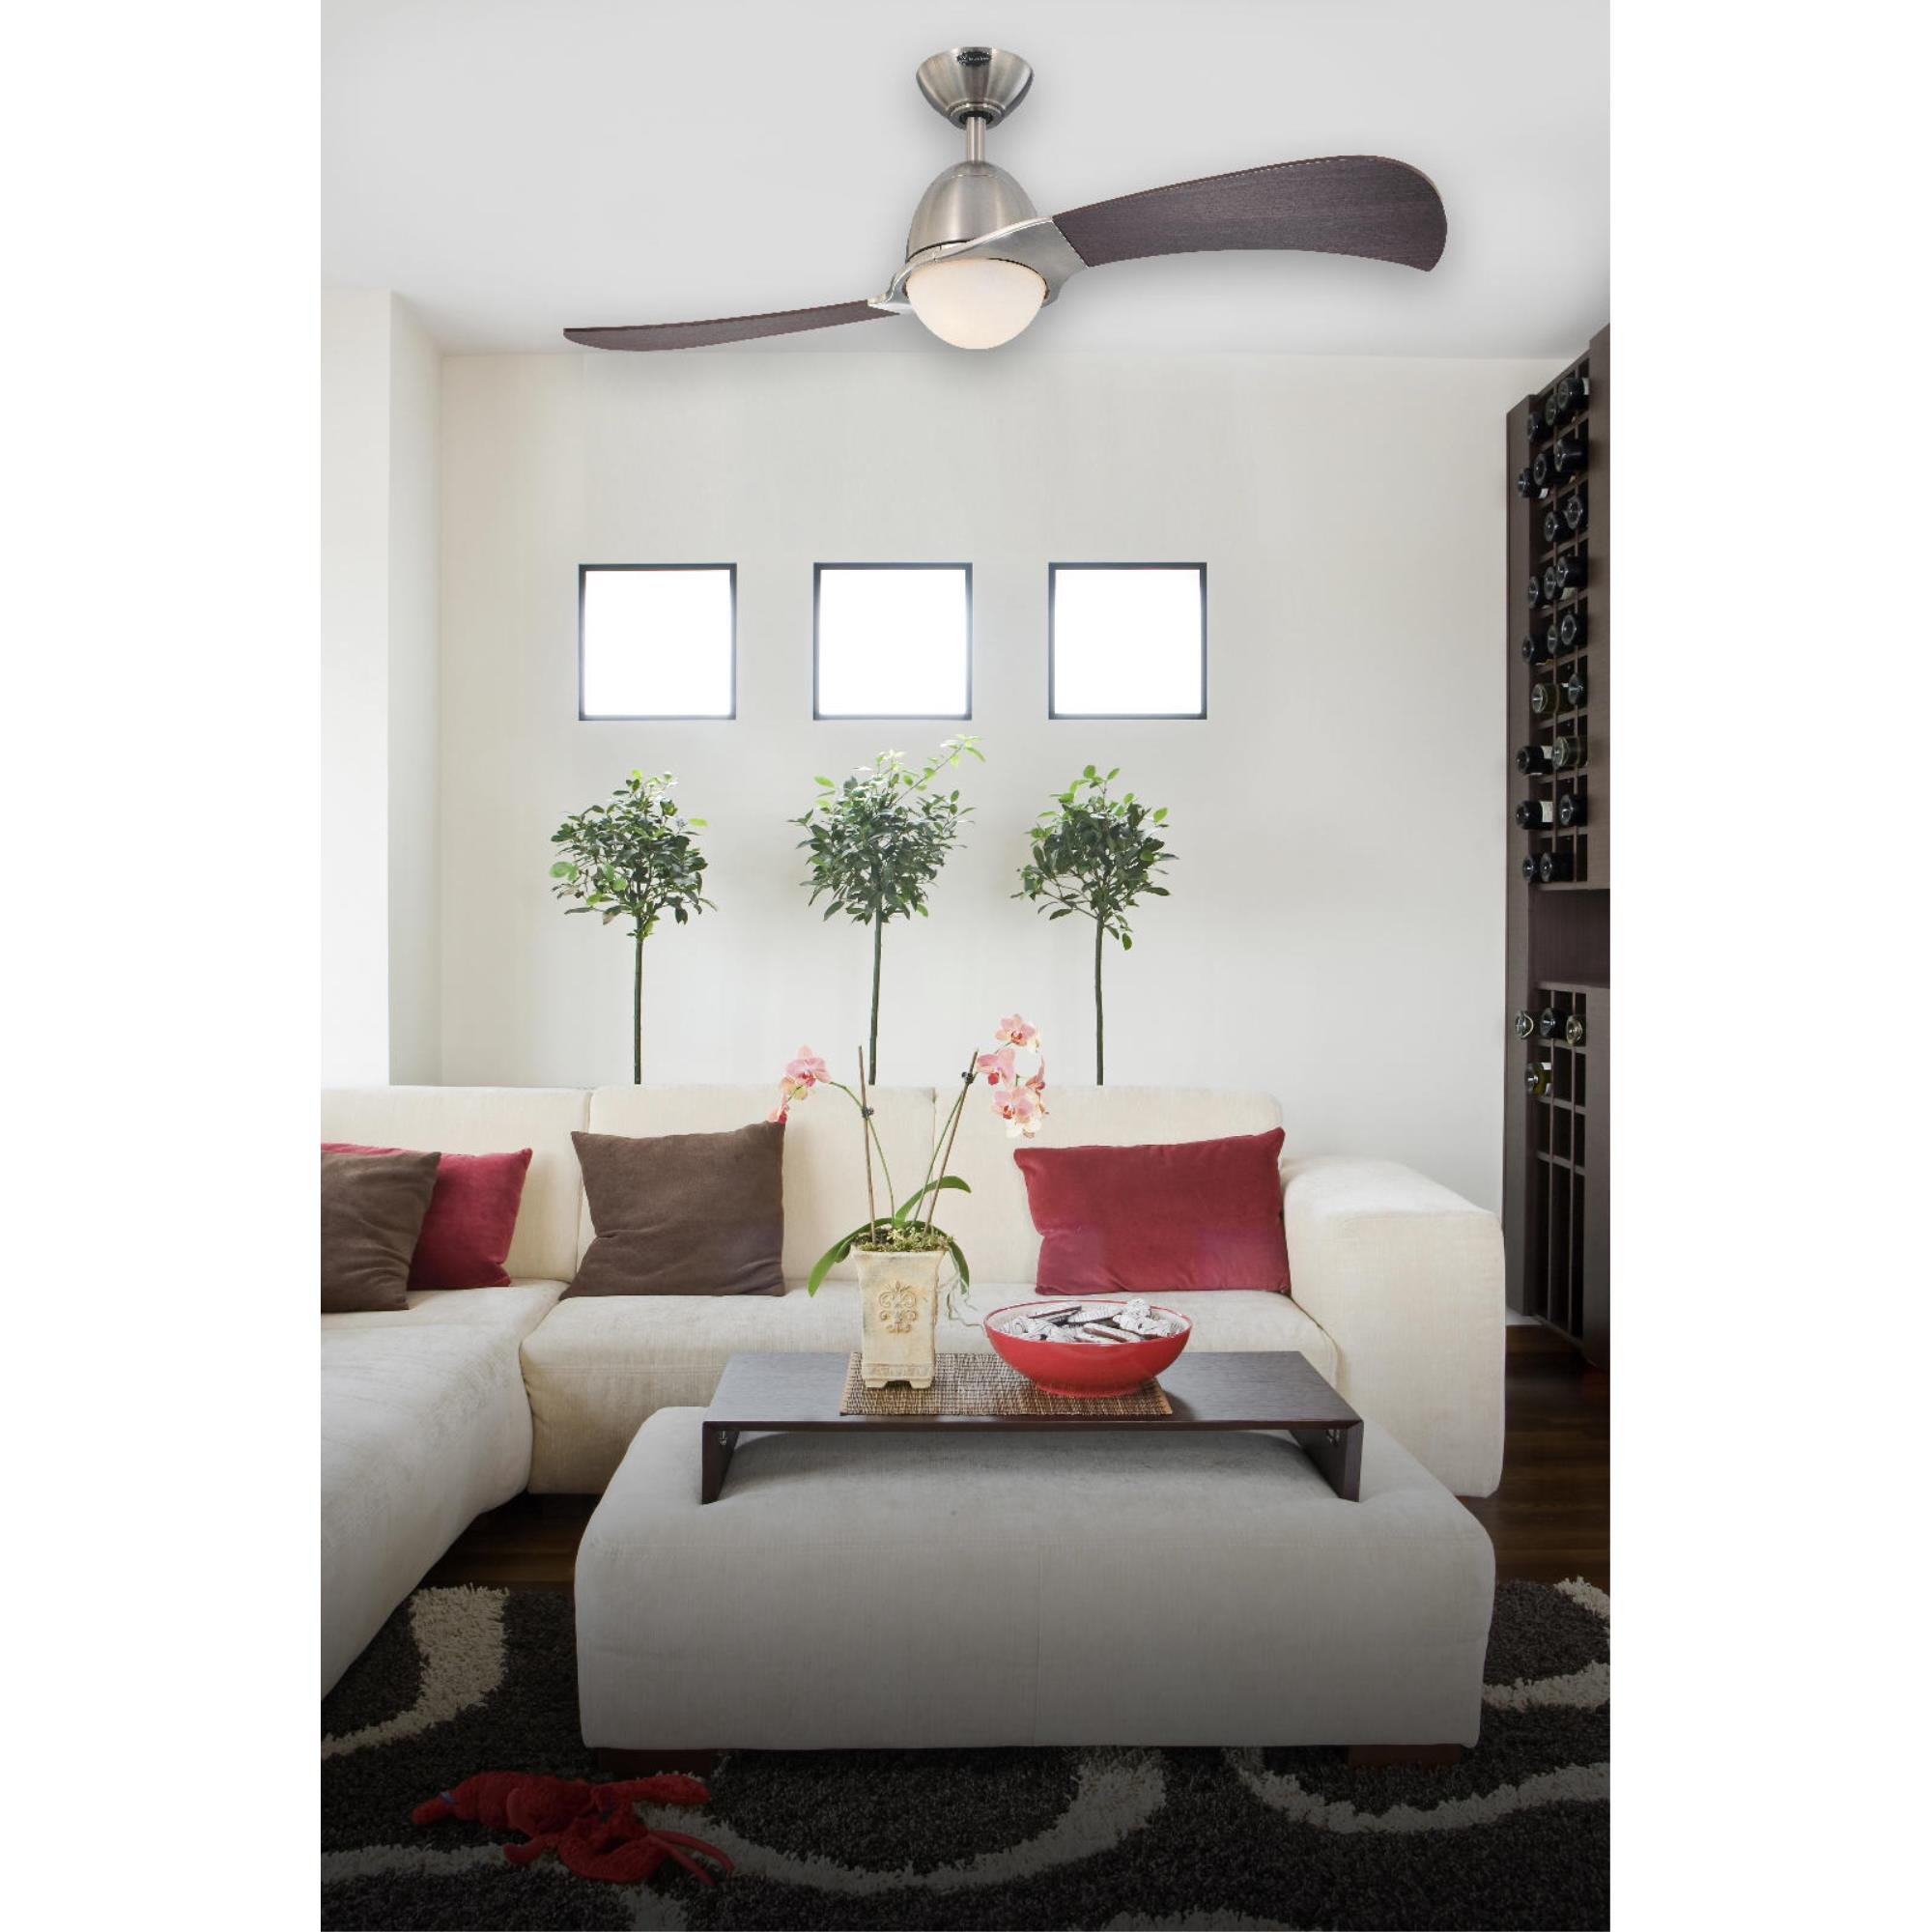 7216100 Solana 48-Inch Brushed Nickel Indoor Ceiling Fan, Light Kit with Opal Frosted Glass by Westinghouse (Image #3)